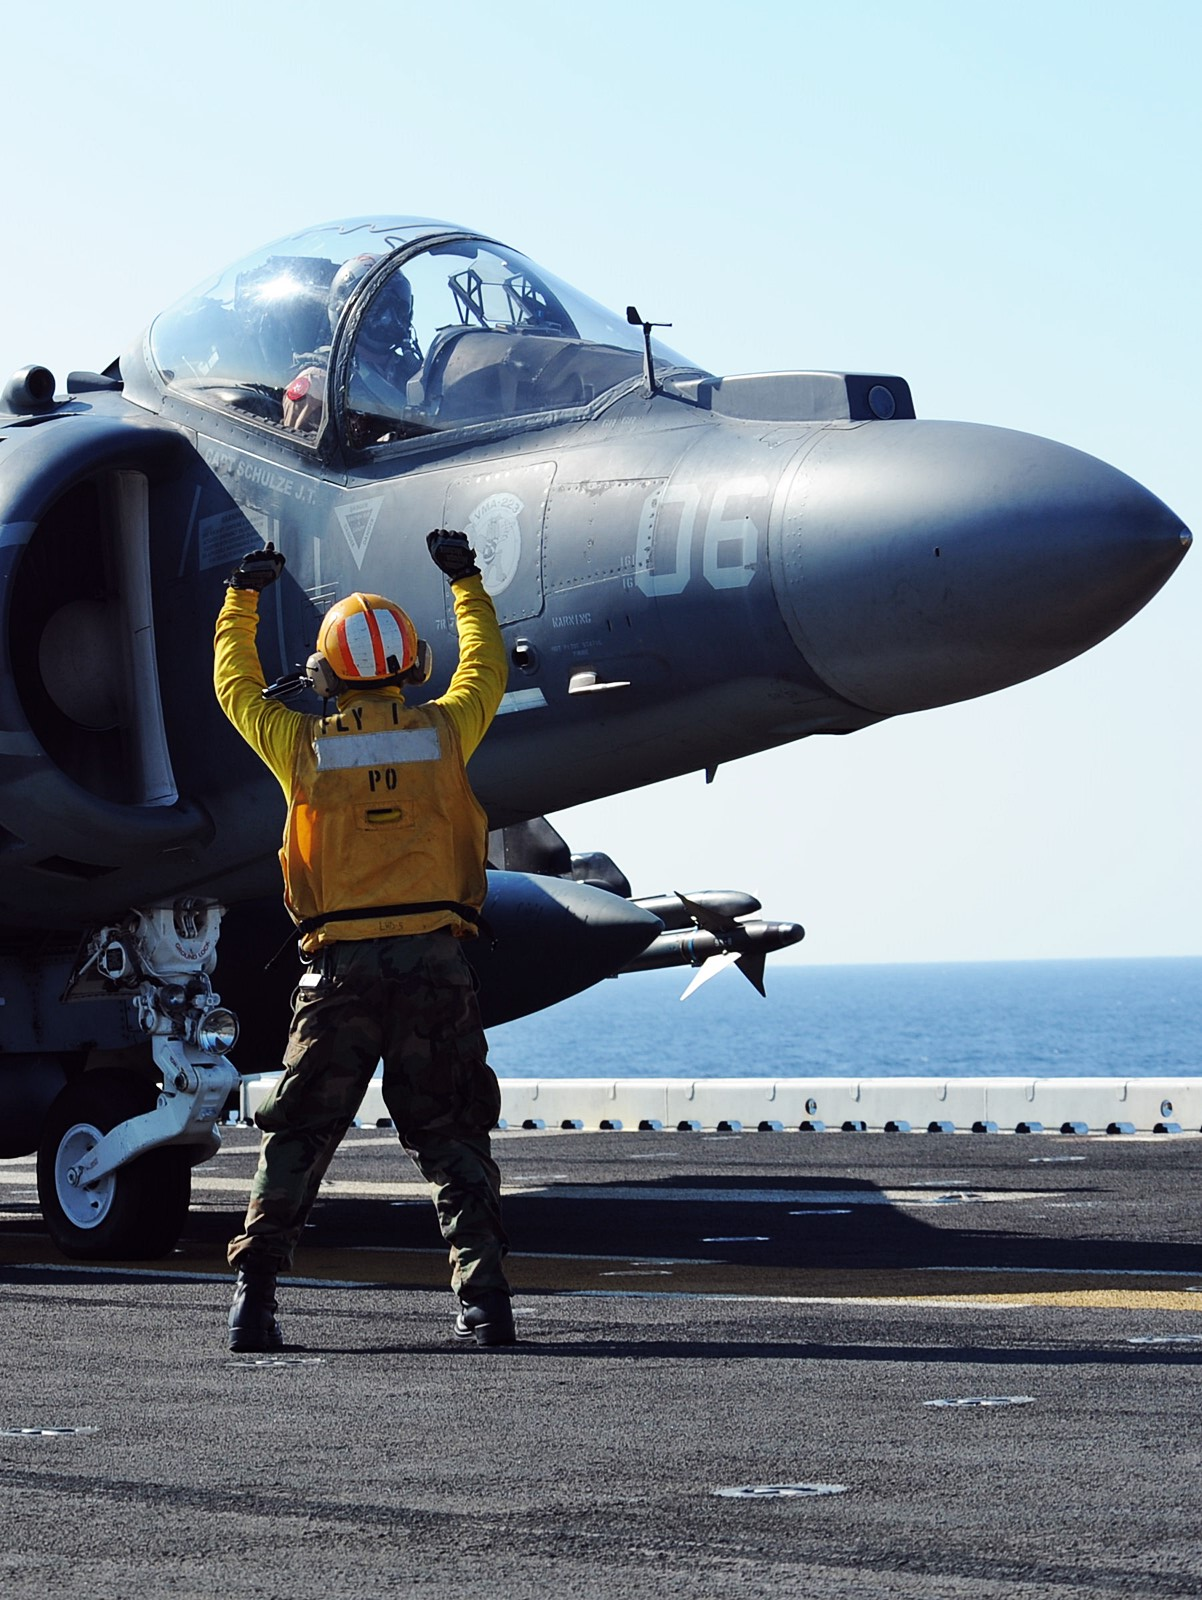 AV-8B Harrier aboard the multipurpose amphib..